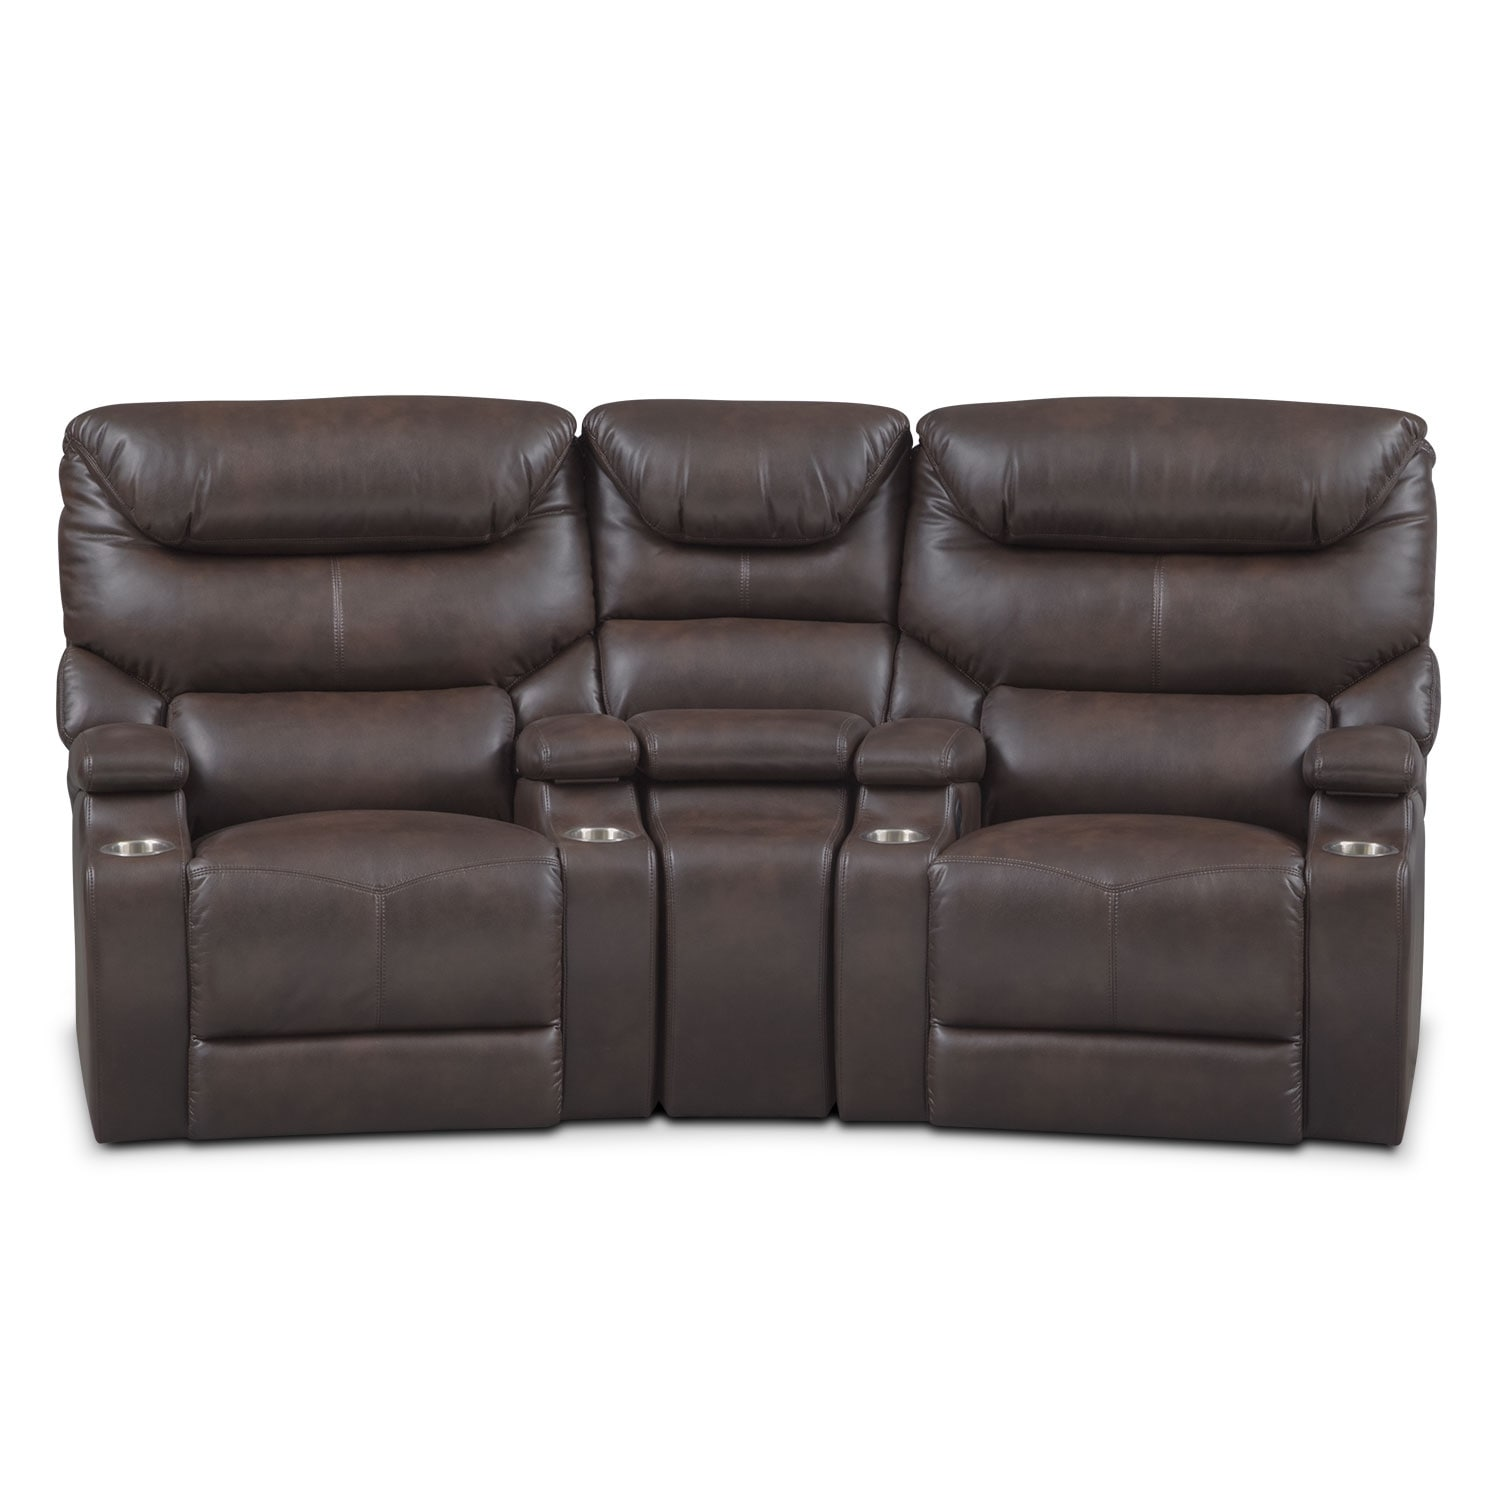 Saturn 3-Piece Power Home Theater Sectional - Brown